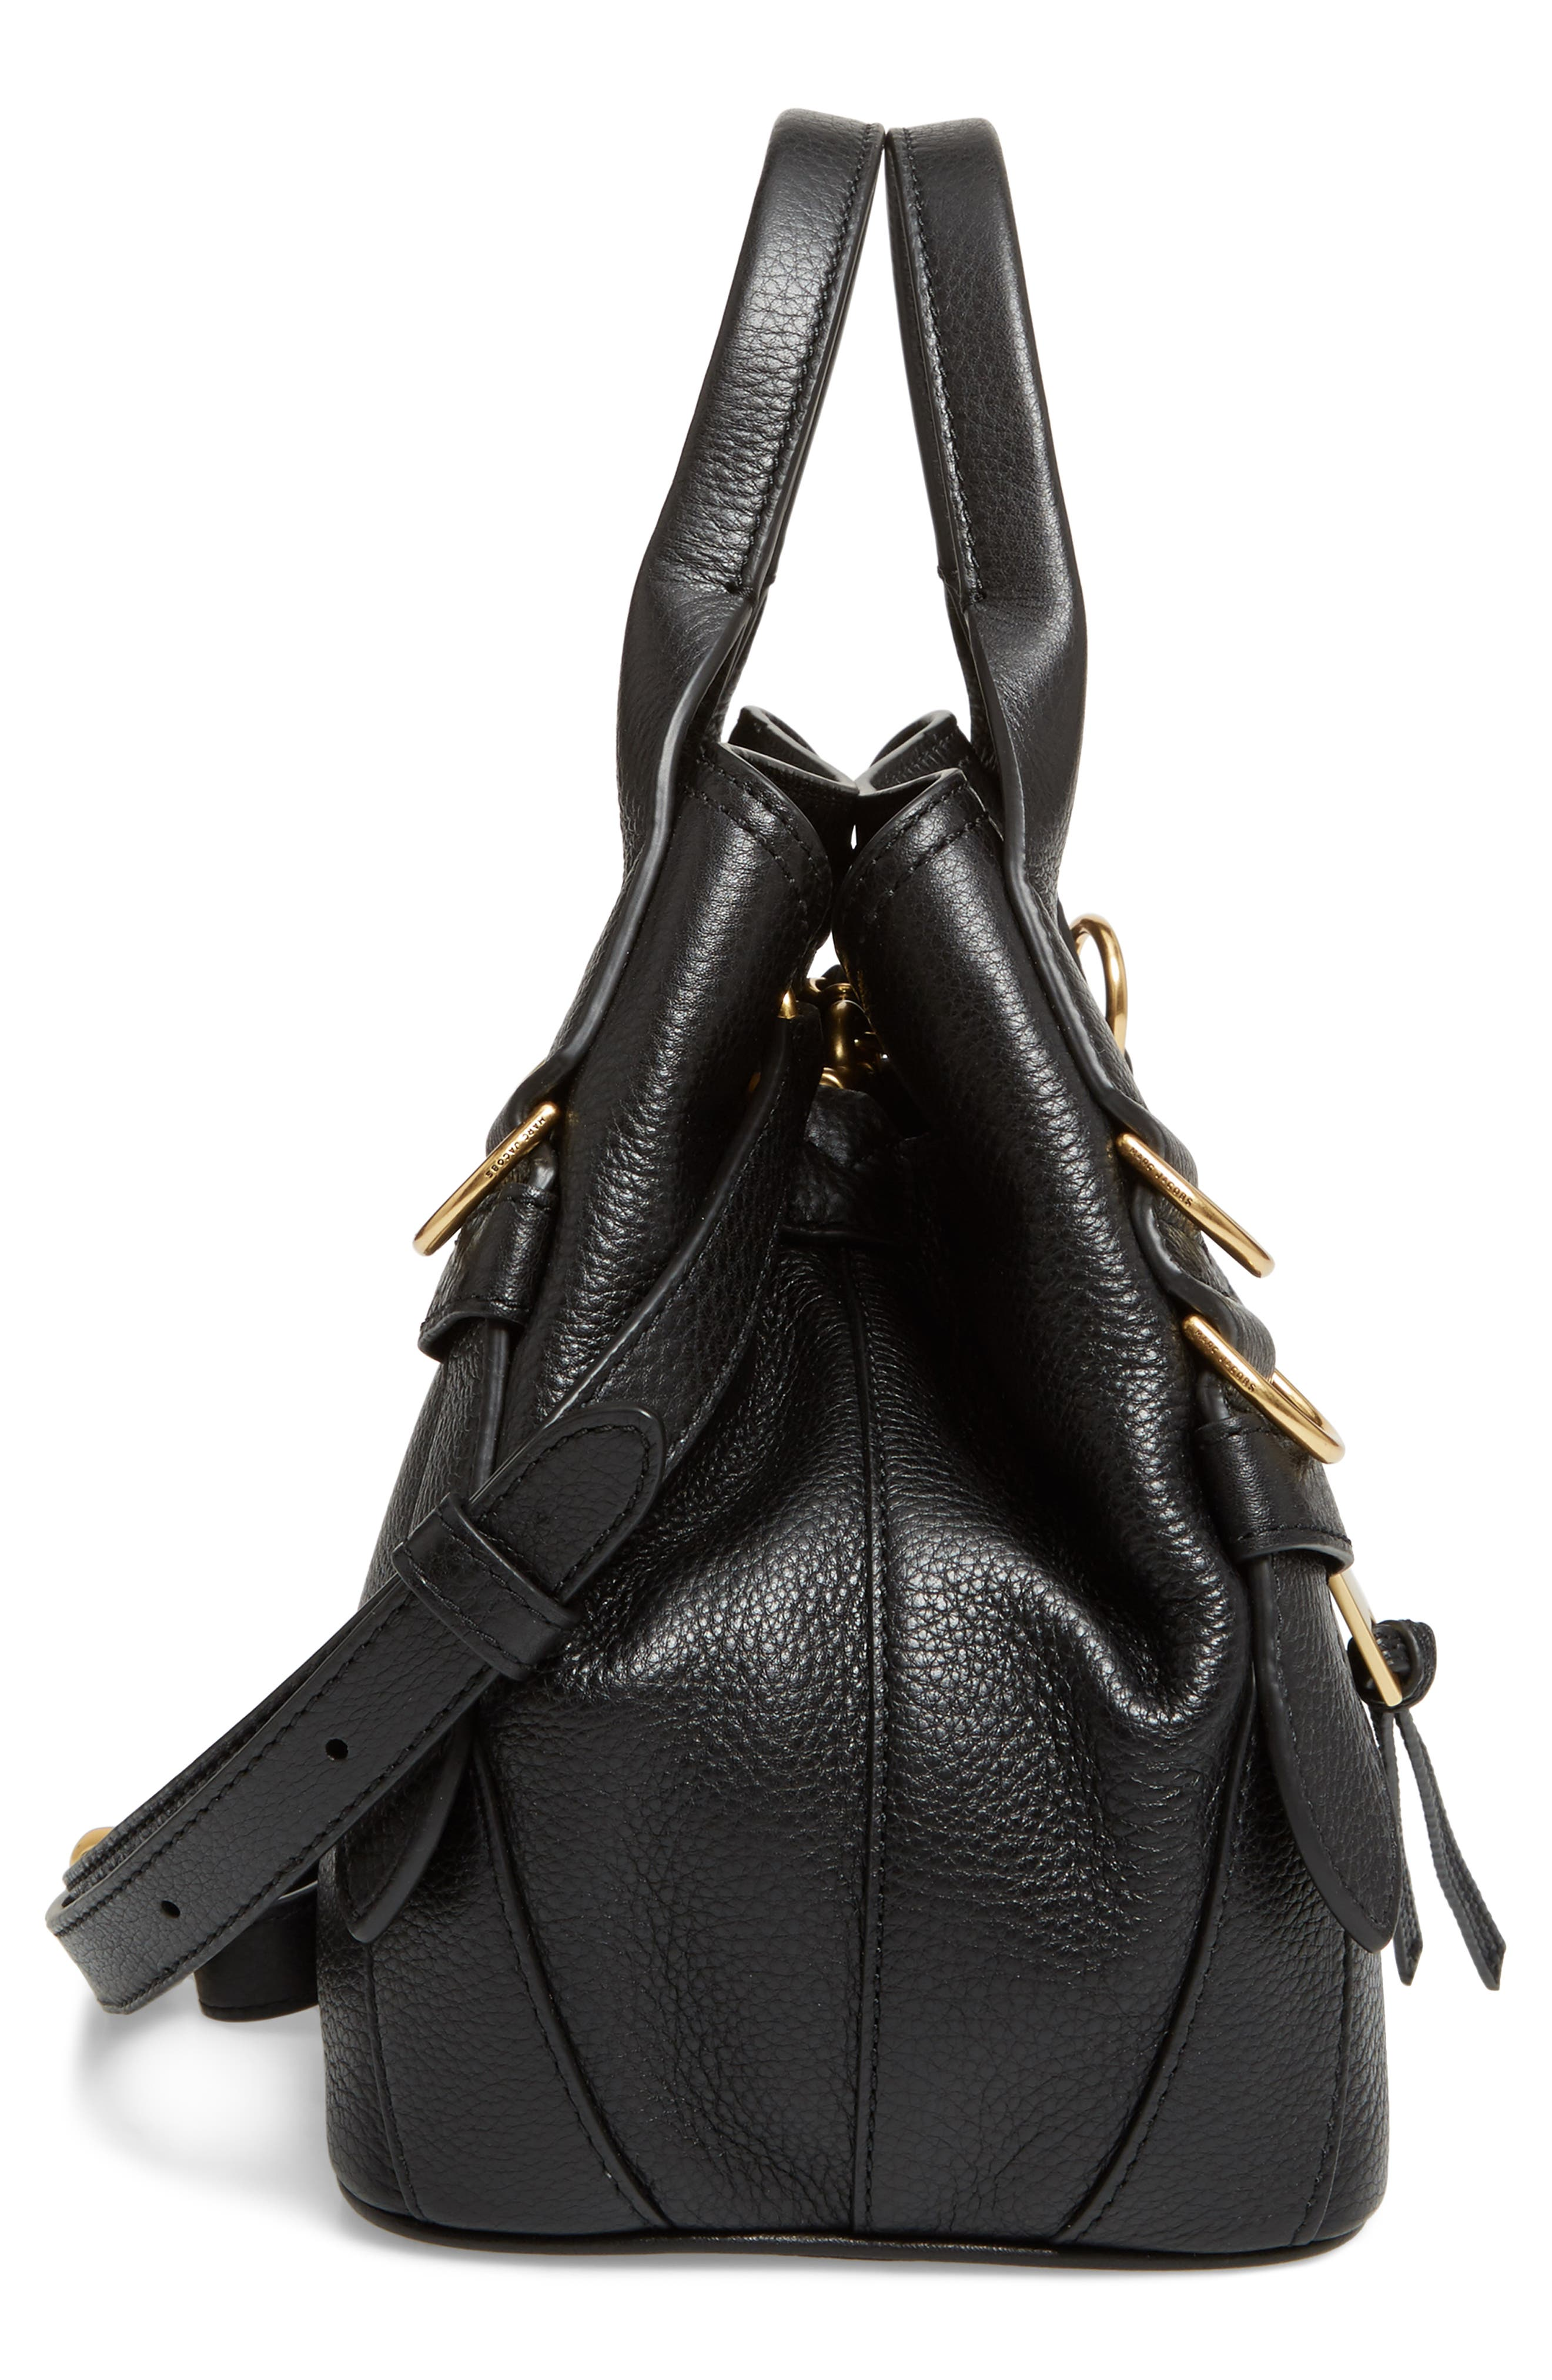 MARC JACOBS,                             The Small Anchor Leather Shoulder Bag,                             Alternate thumbnail 5, color,                             001